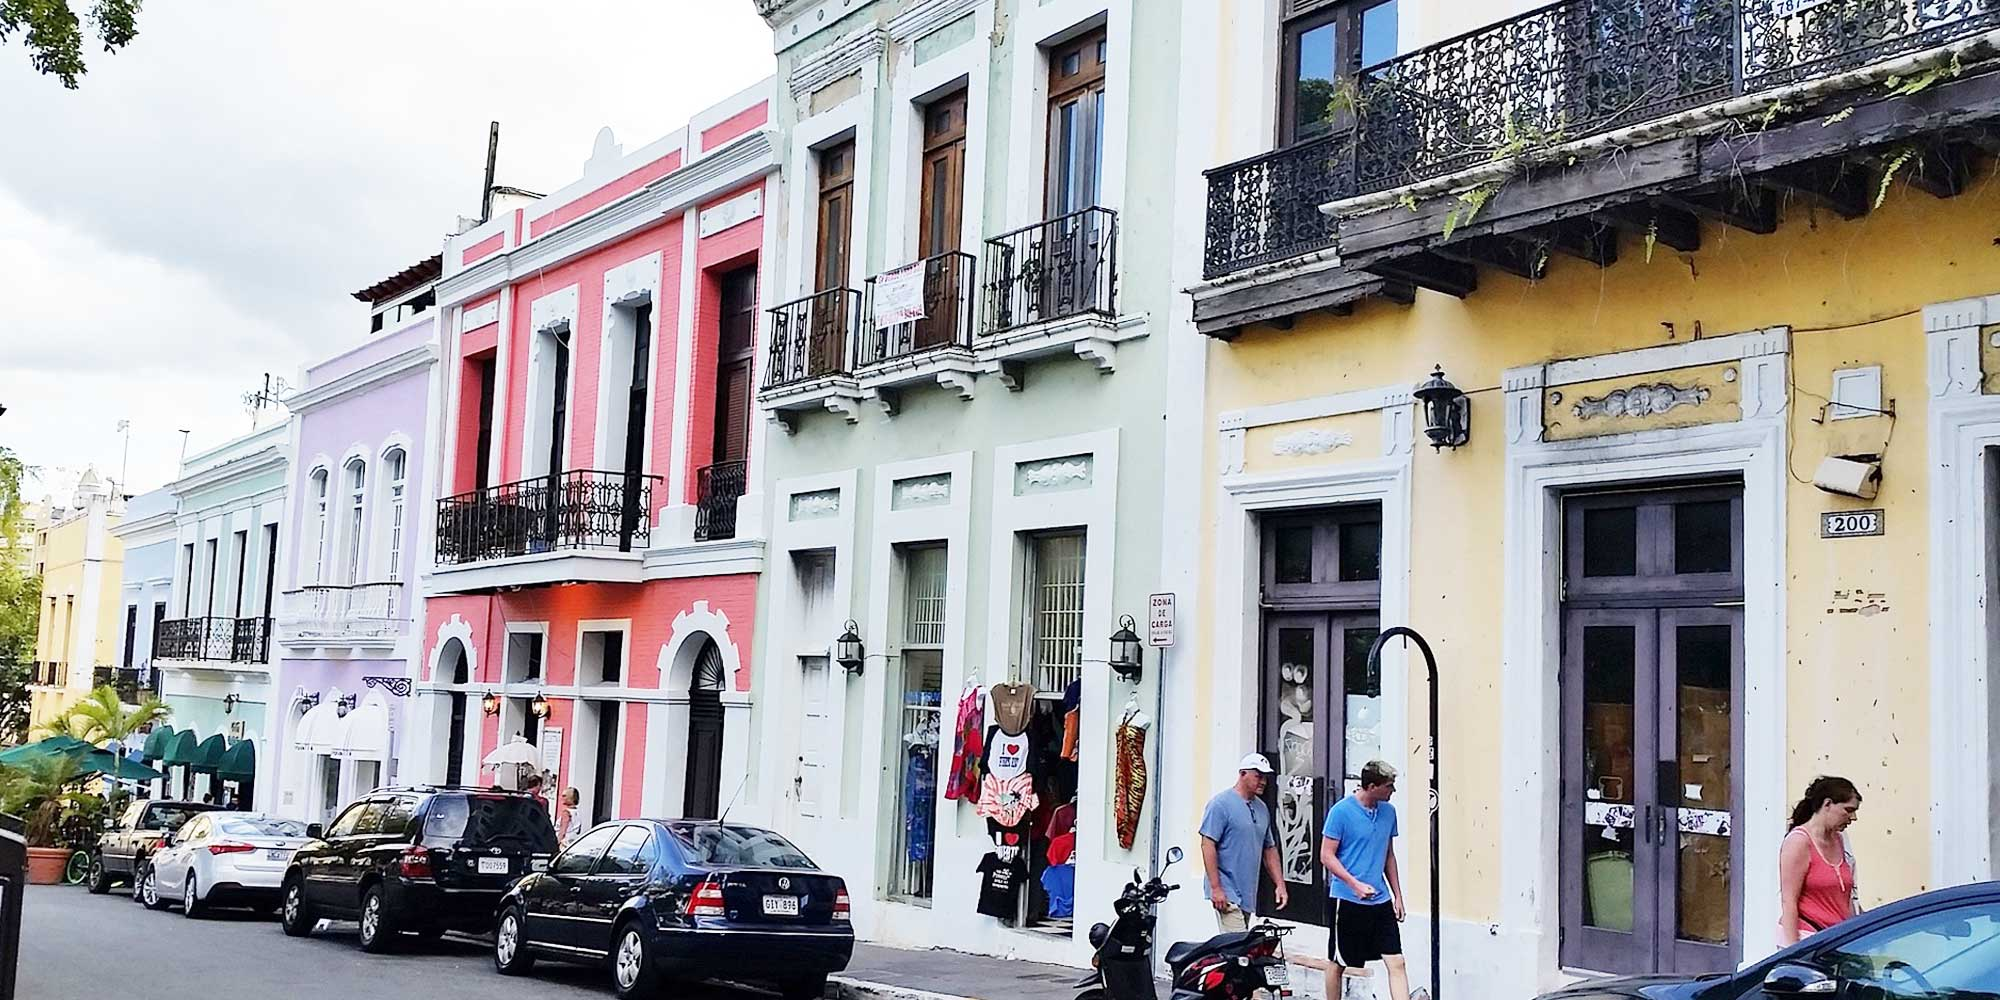 Ranked Choice Voting is Proposed as an Option for Puerto Rico's Self-Determination